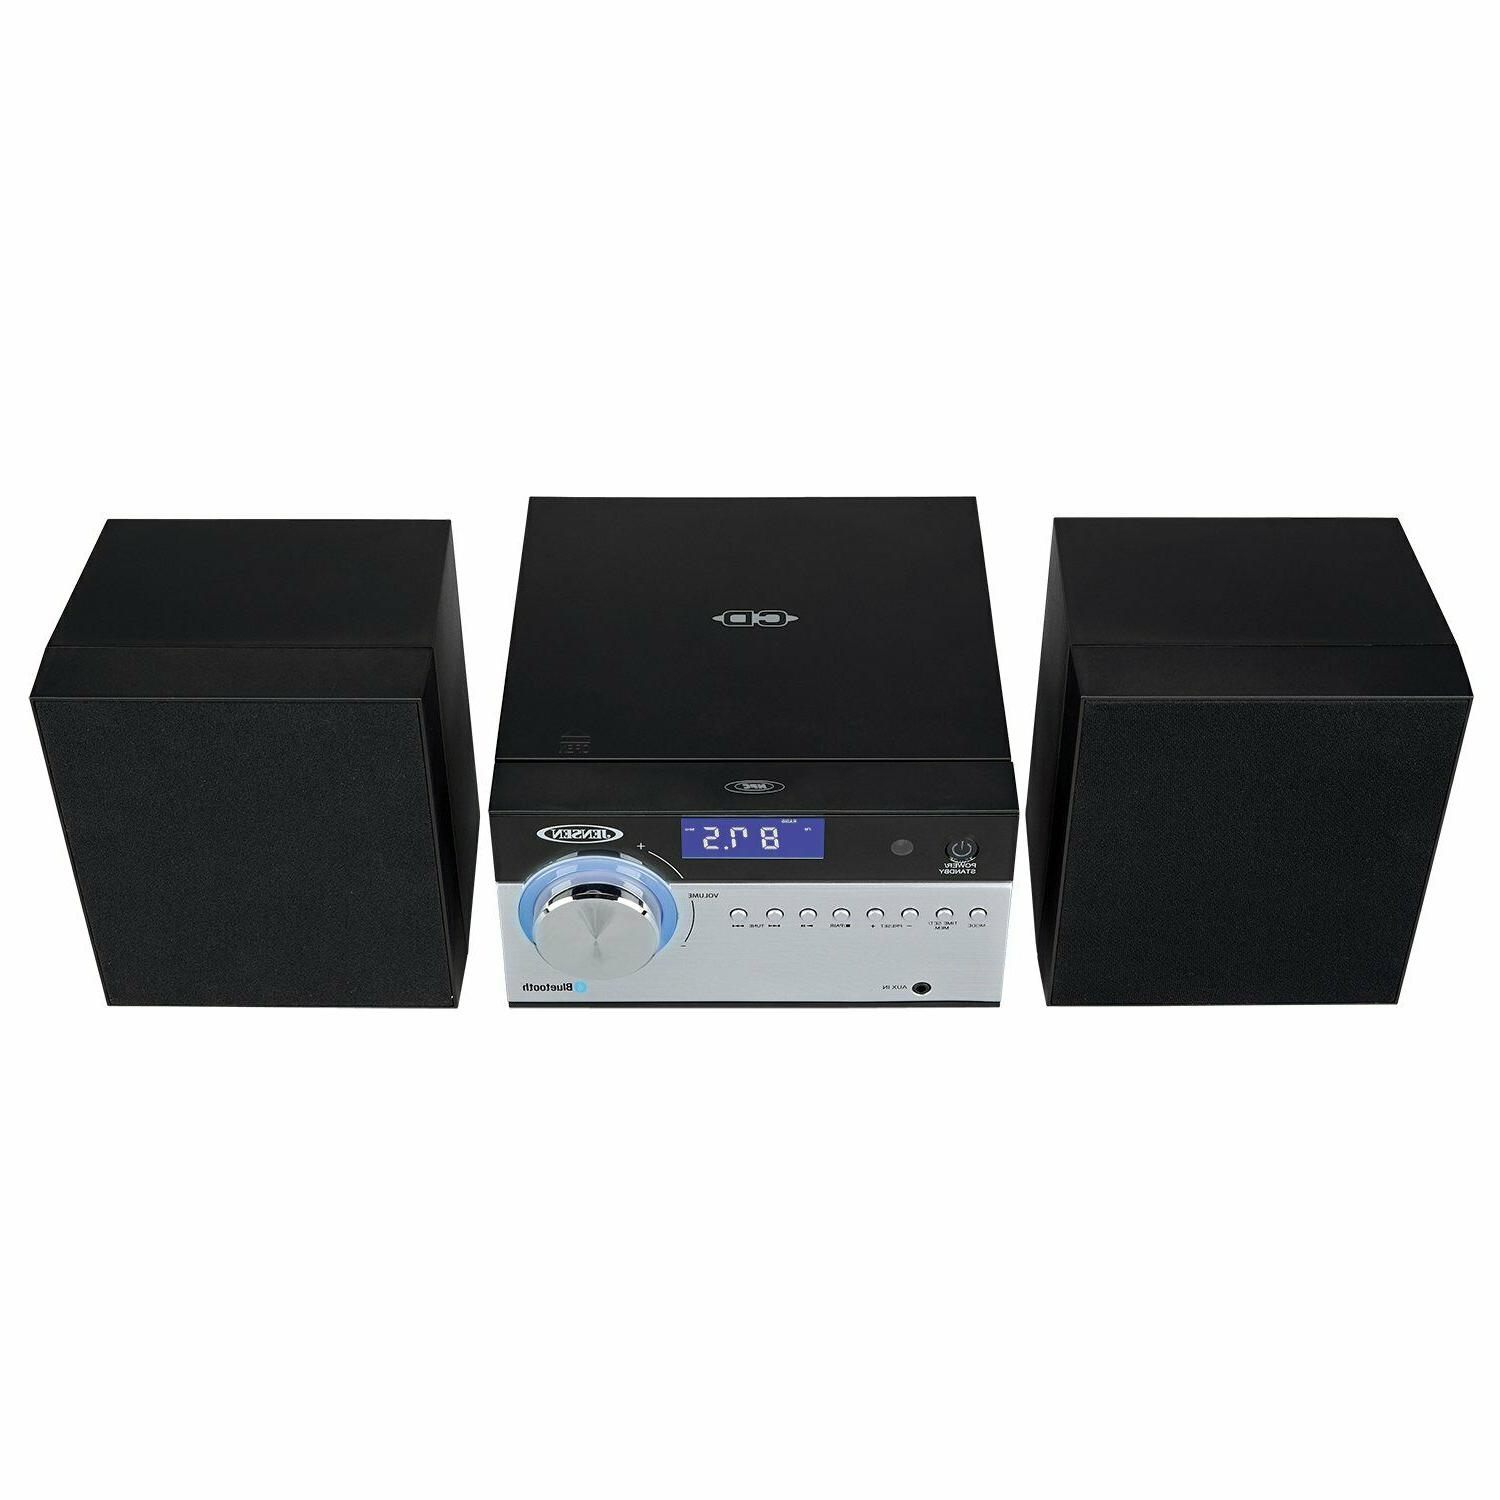 JENSEN CD Player System FM LCD